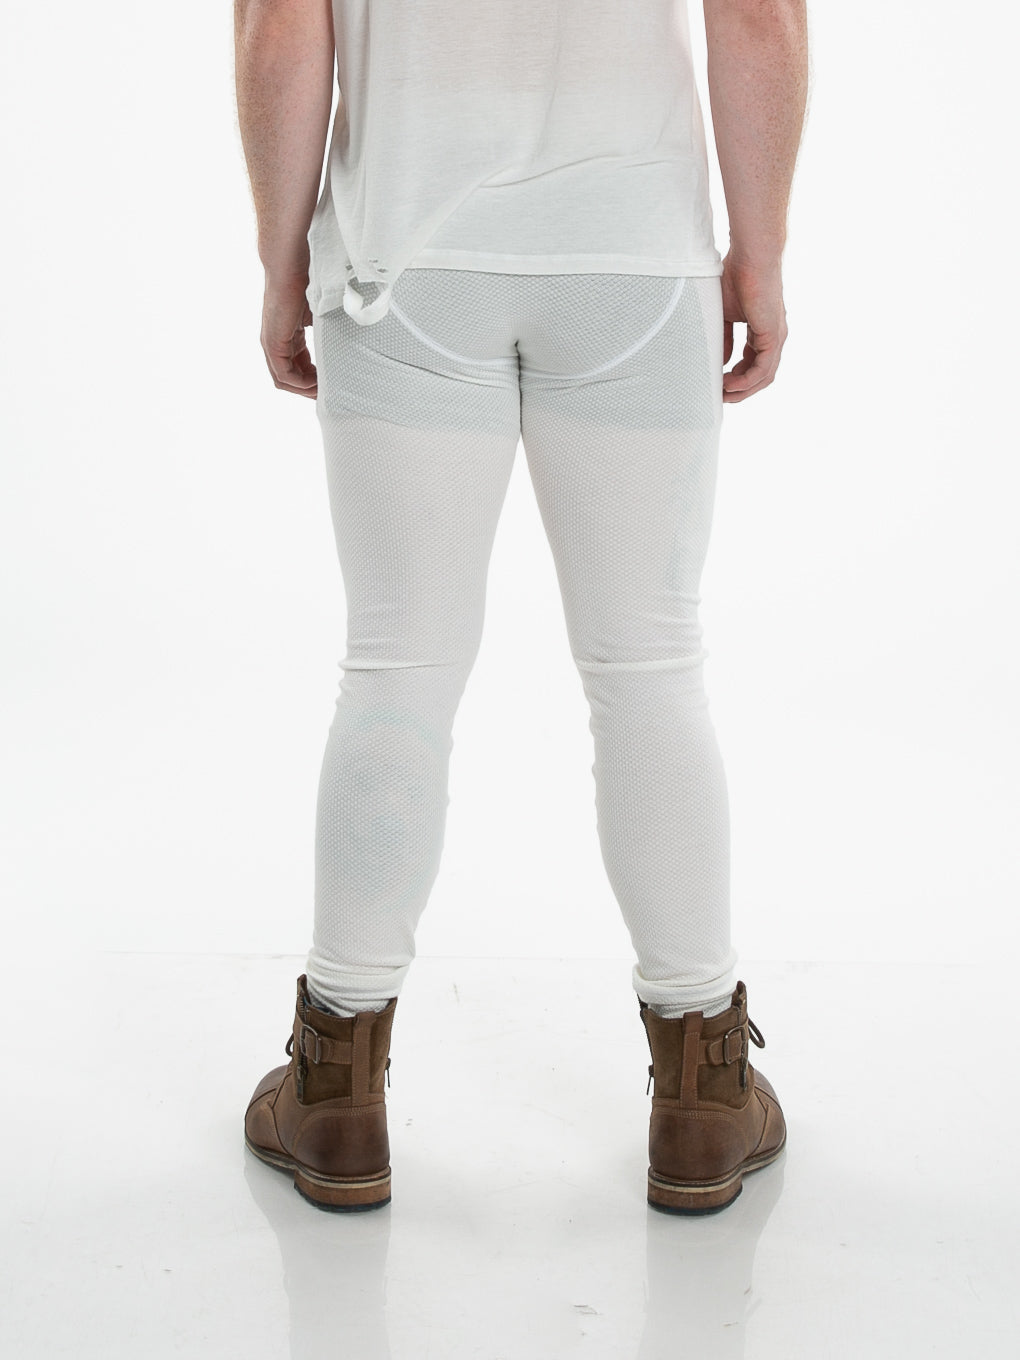 Men's long johns rear